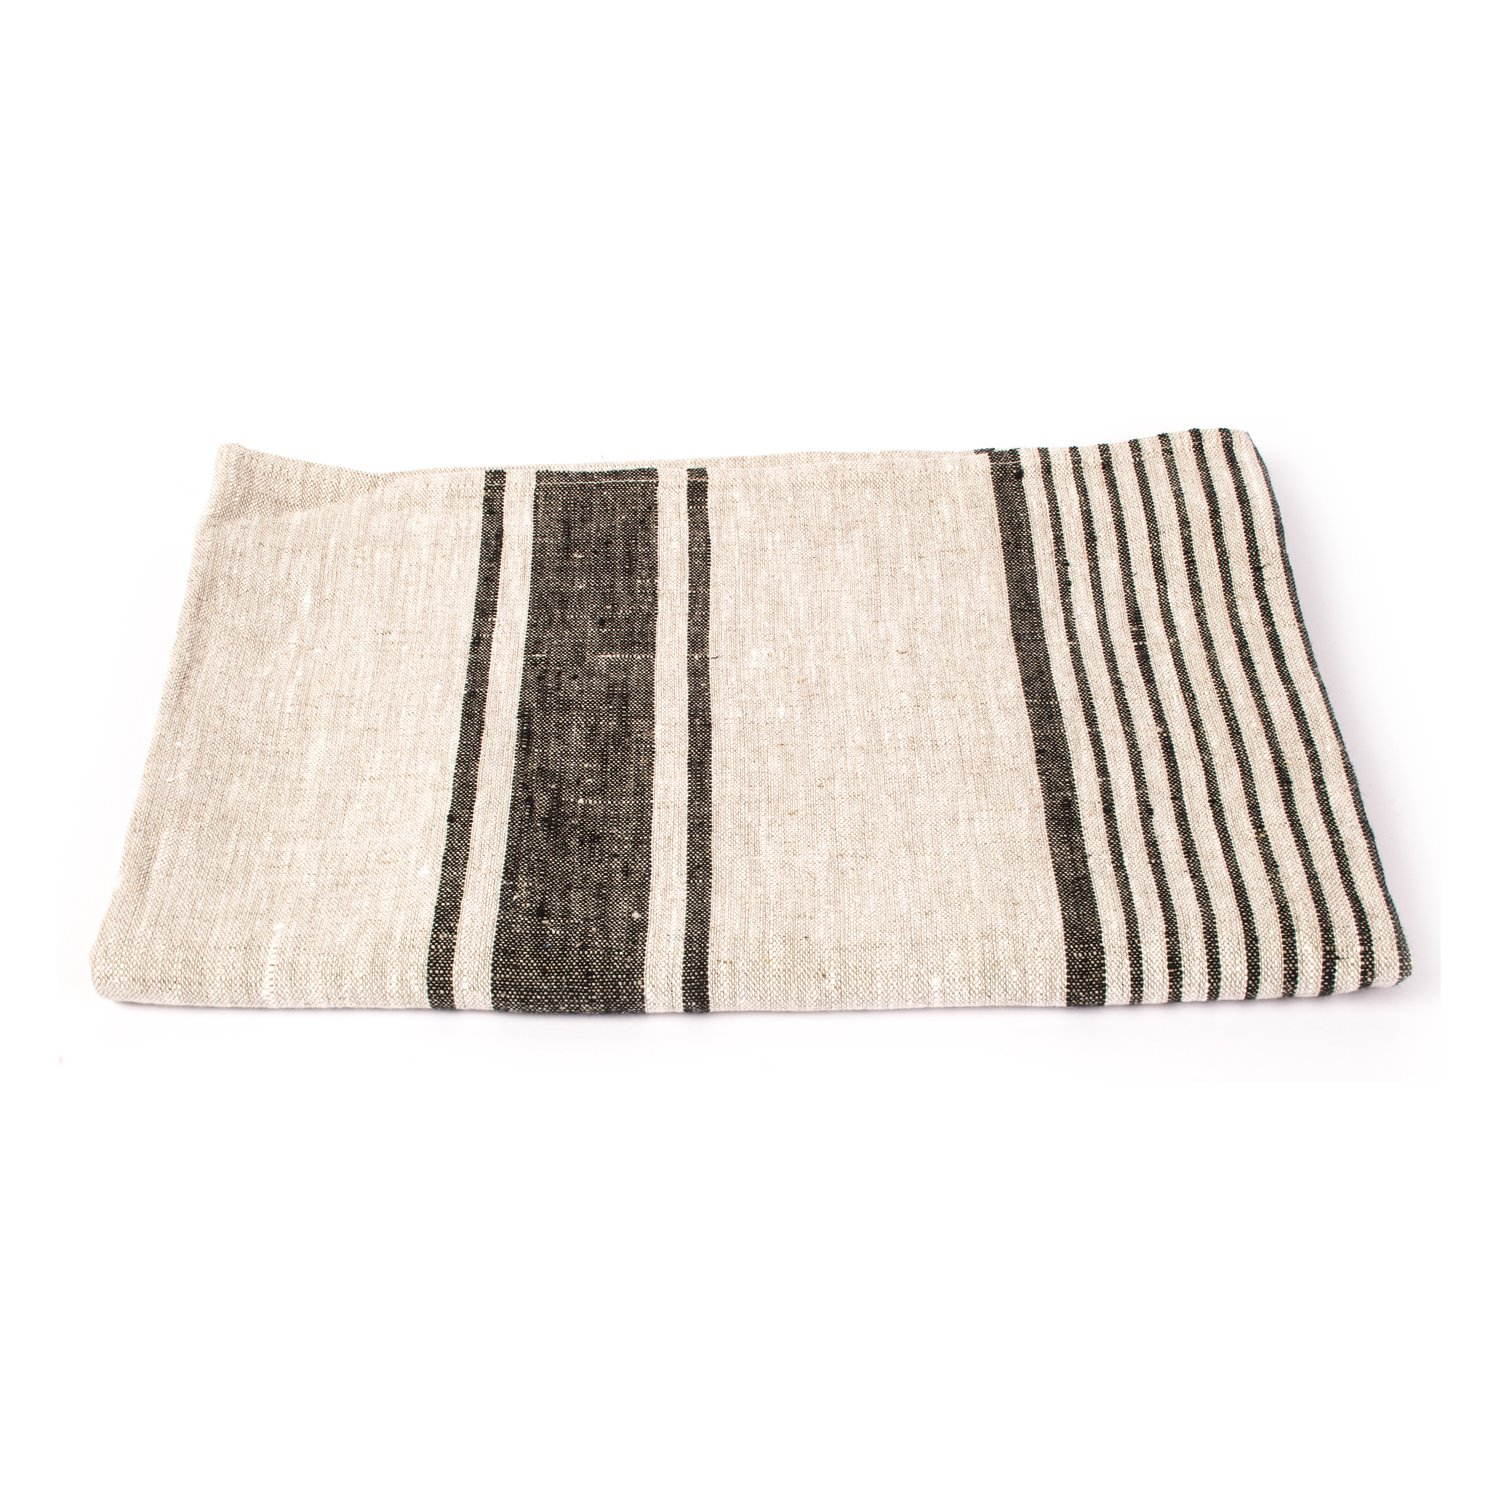 LinenMe Towel Provence, 39 by 57-inch, Black Striped, Prewashed 100%, Made in Europe, Bath Sheet, European Linen, Machine Washable, Super Absorbent, 39'' x 57'',